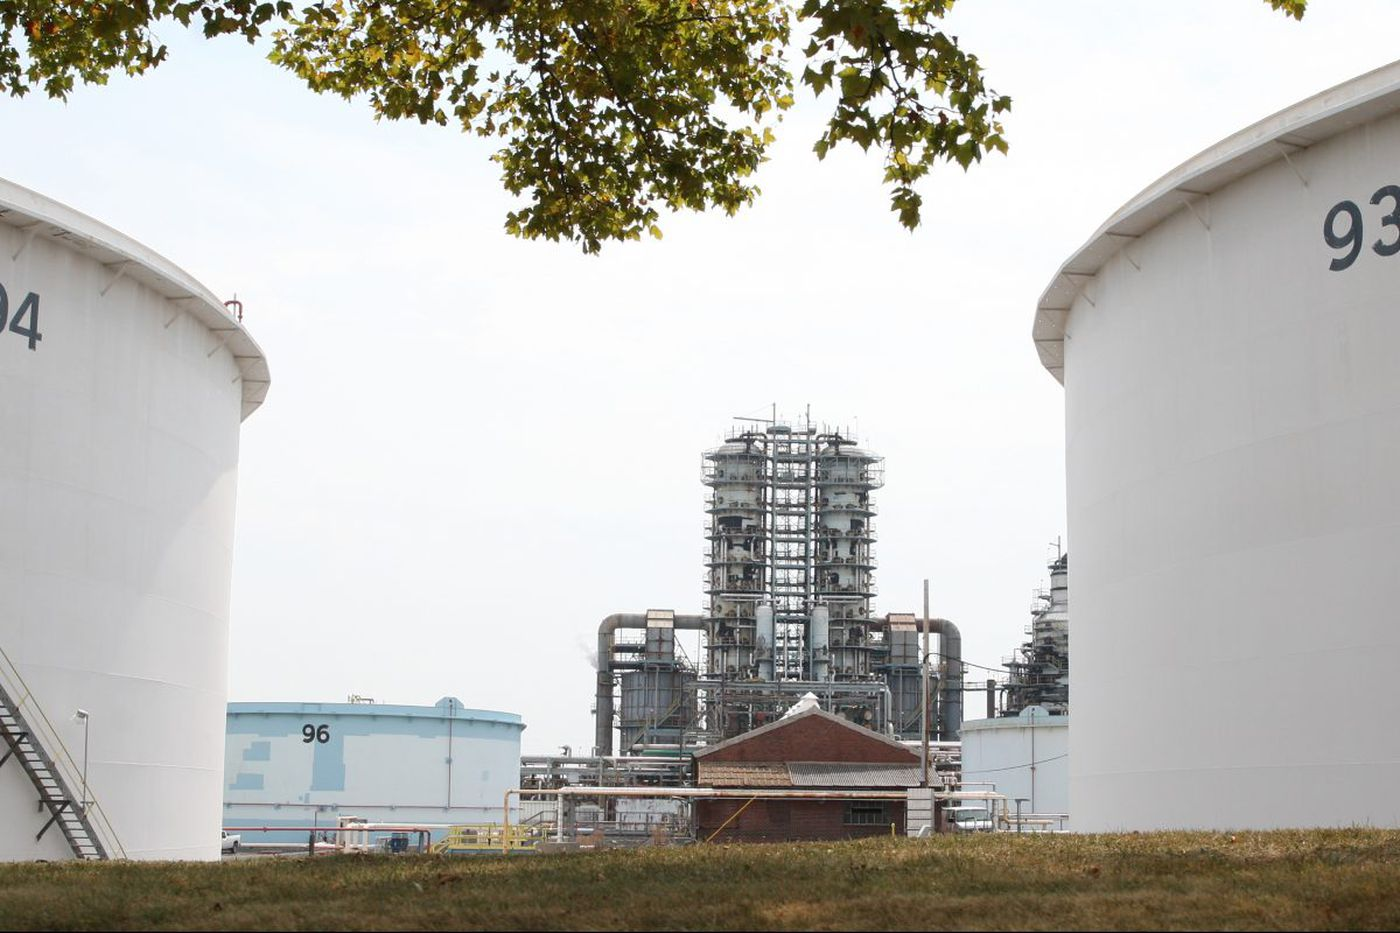 Will consumers benefit from Pa. gasoline pipeline reversal?